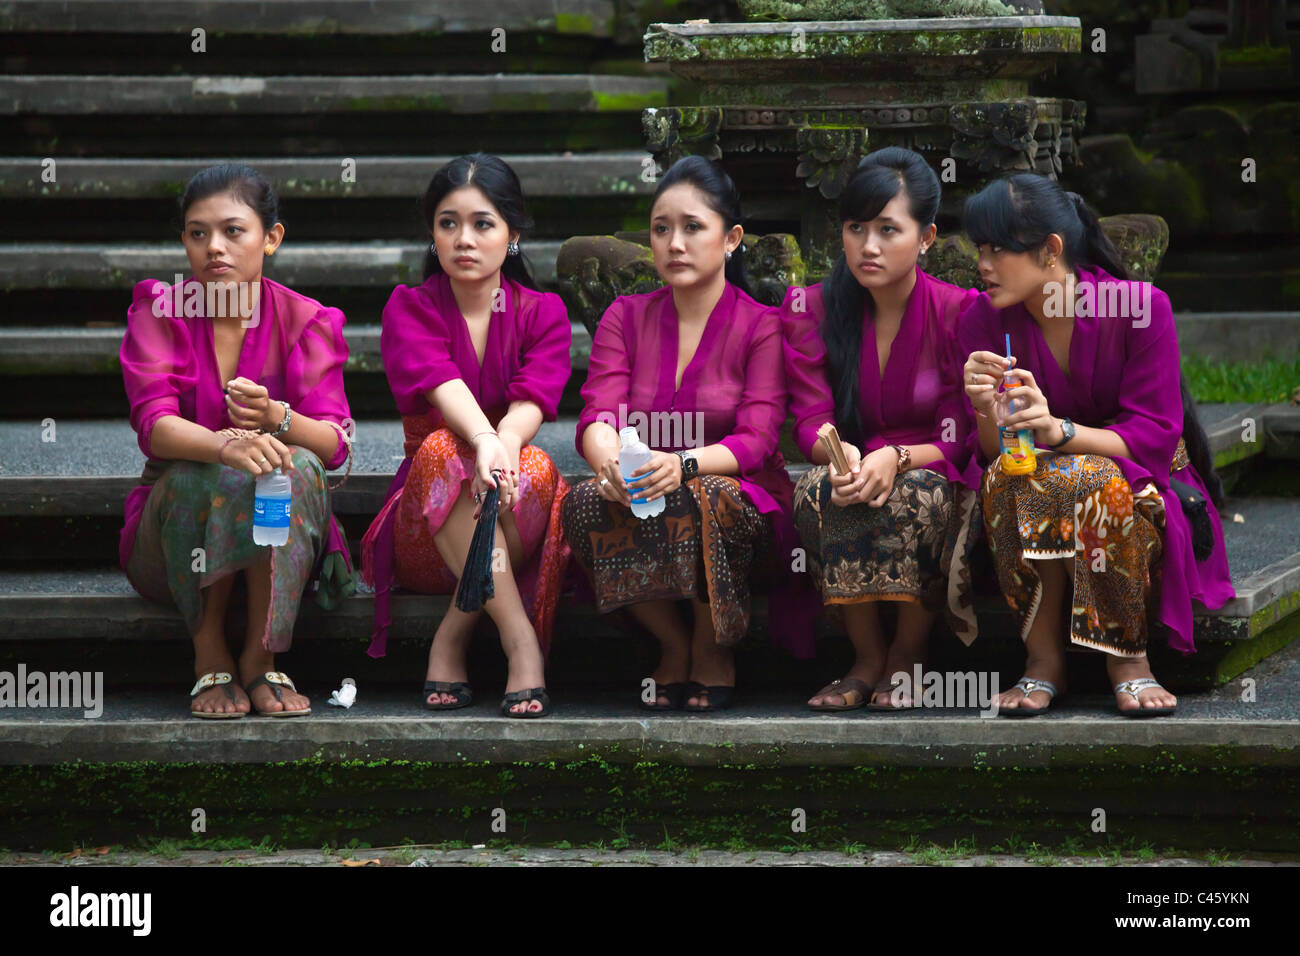 Relatives participate in a Hindu style CREMATION - UBUD, BALI, INDONESIA - Stock Image